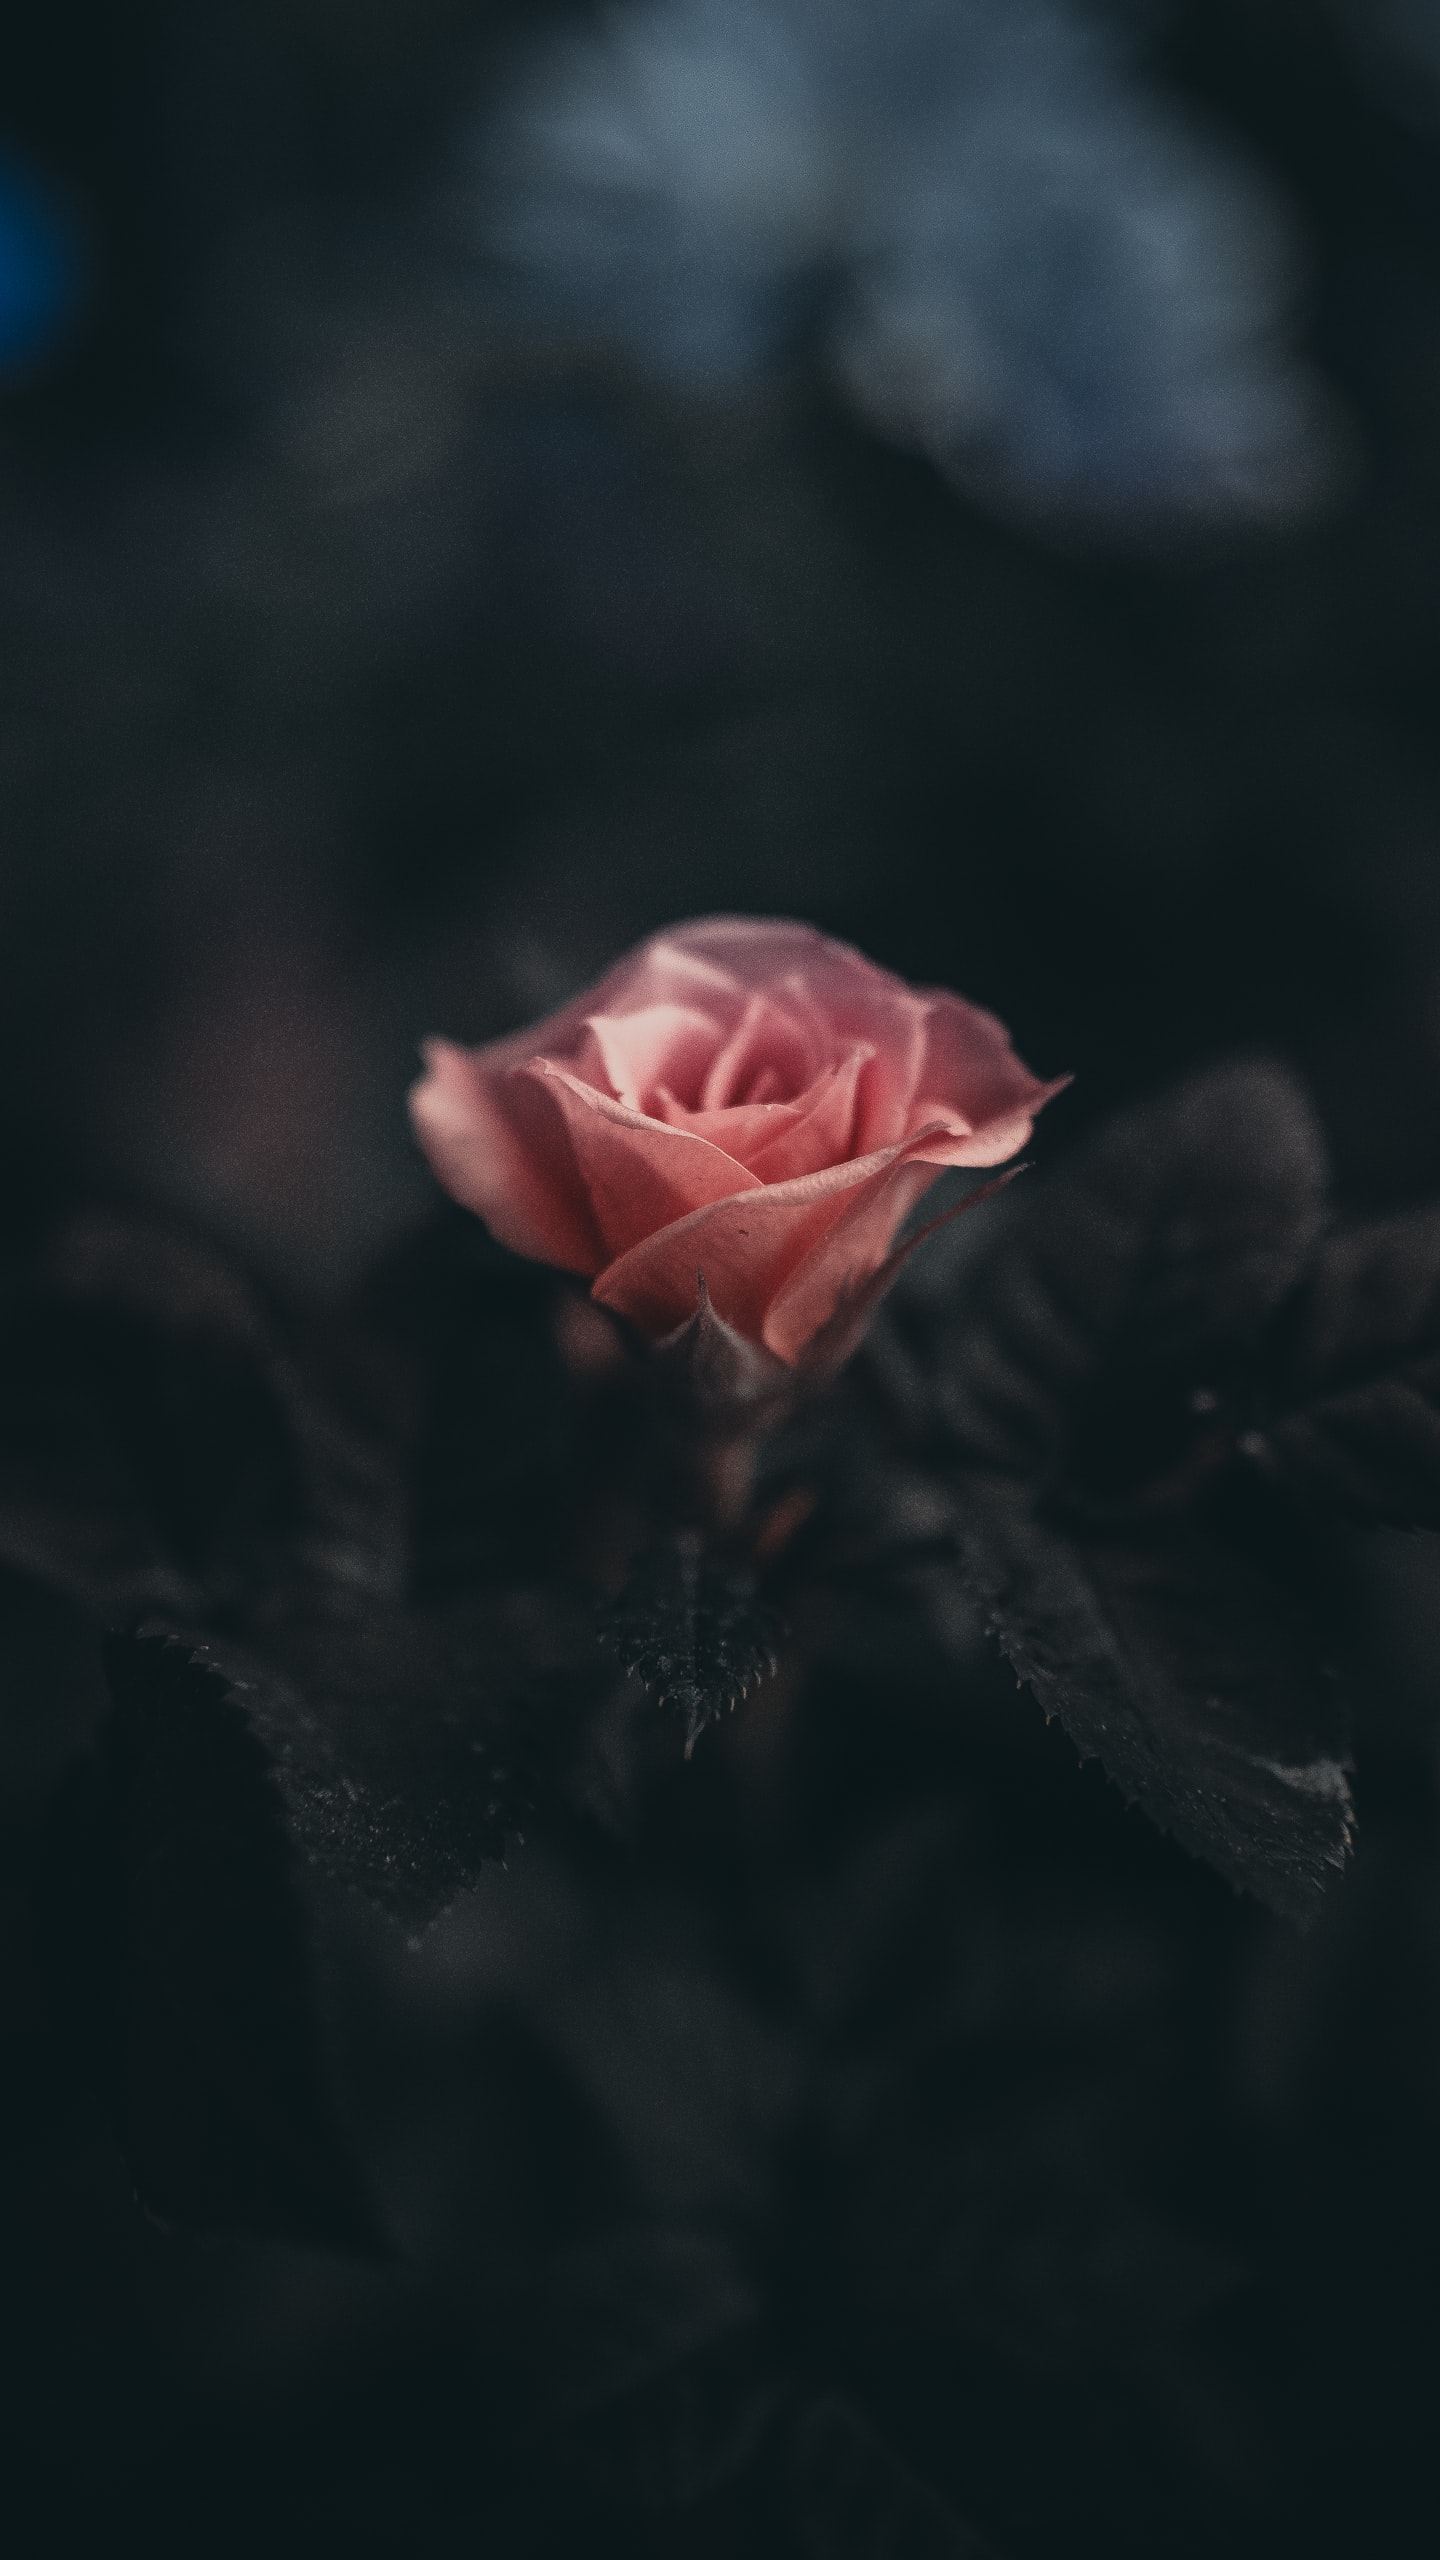 A pink rose blossoming in the dark